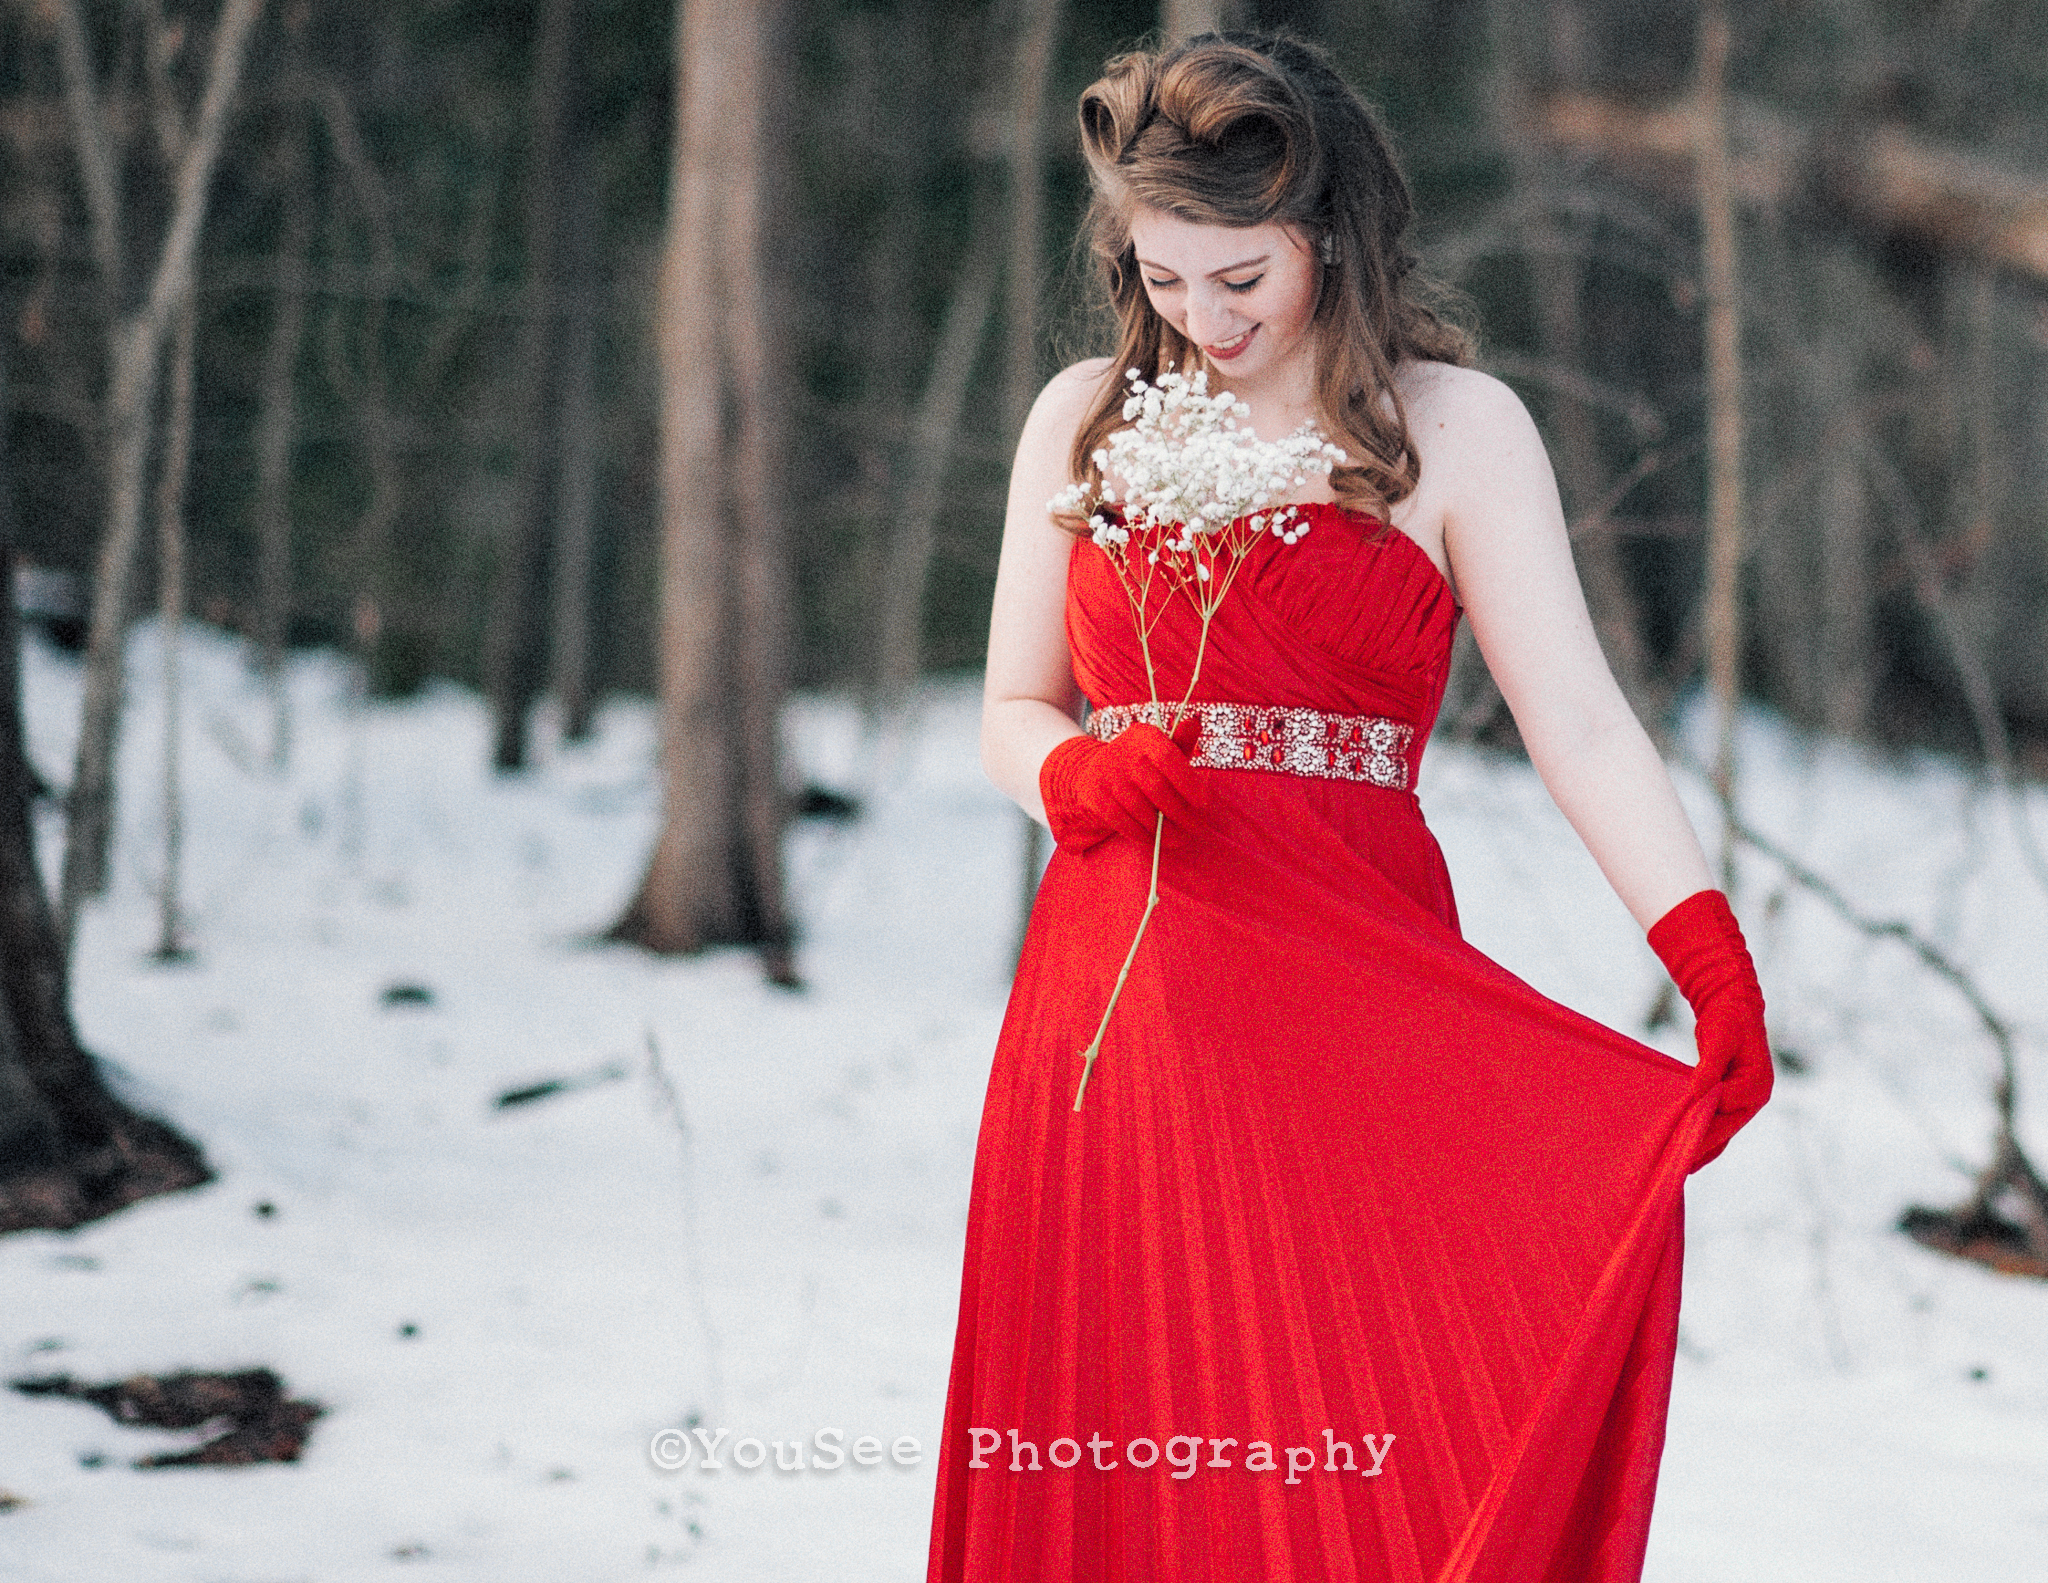 seniorportrait_fredericksburg_photography_winter (7)